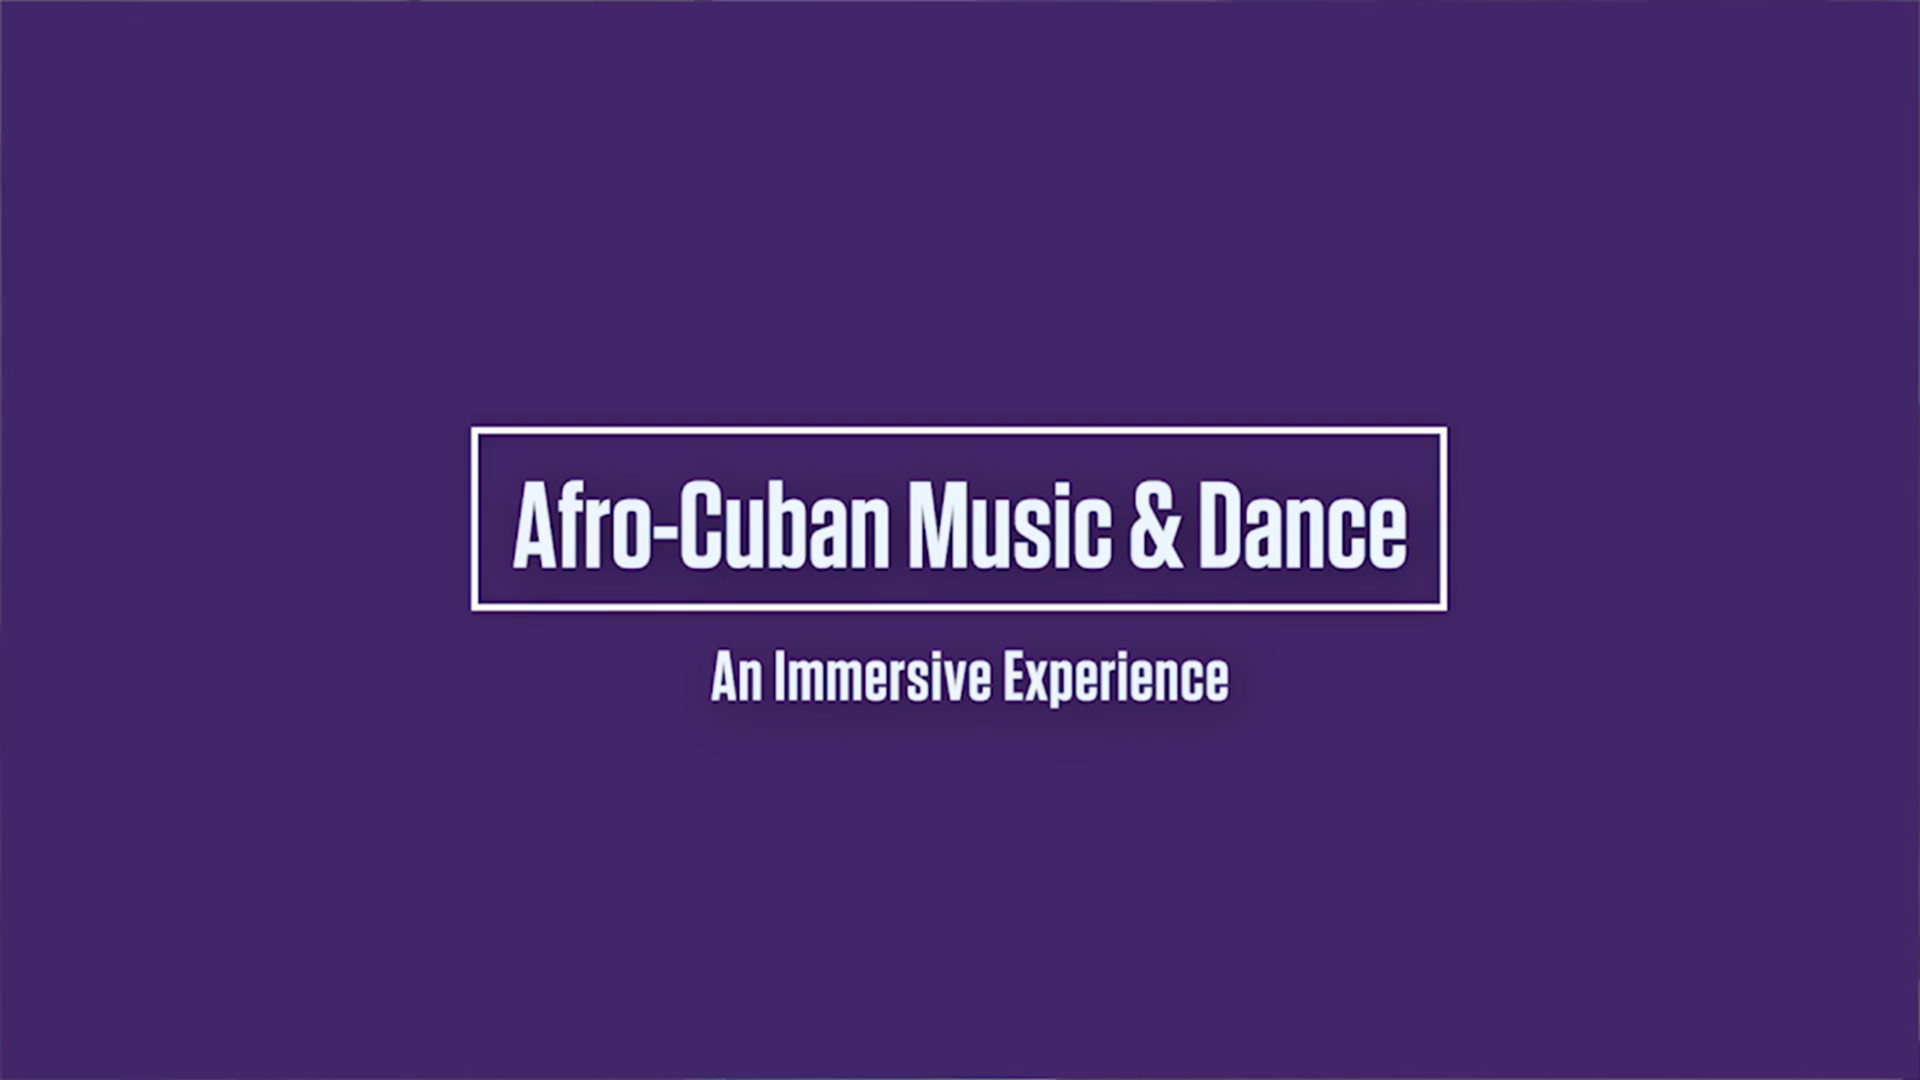 Afro-Cuban Music & Dance Immersive Experience